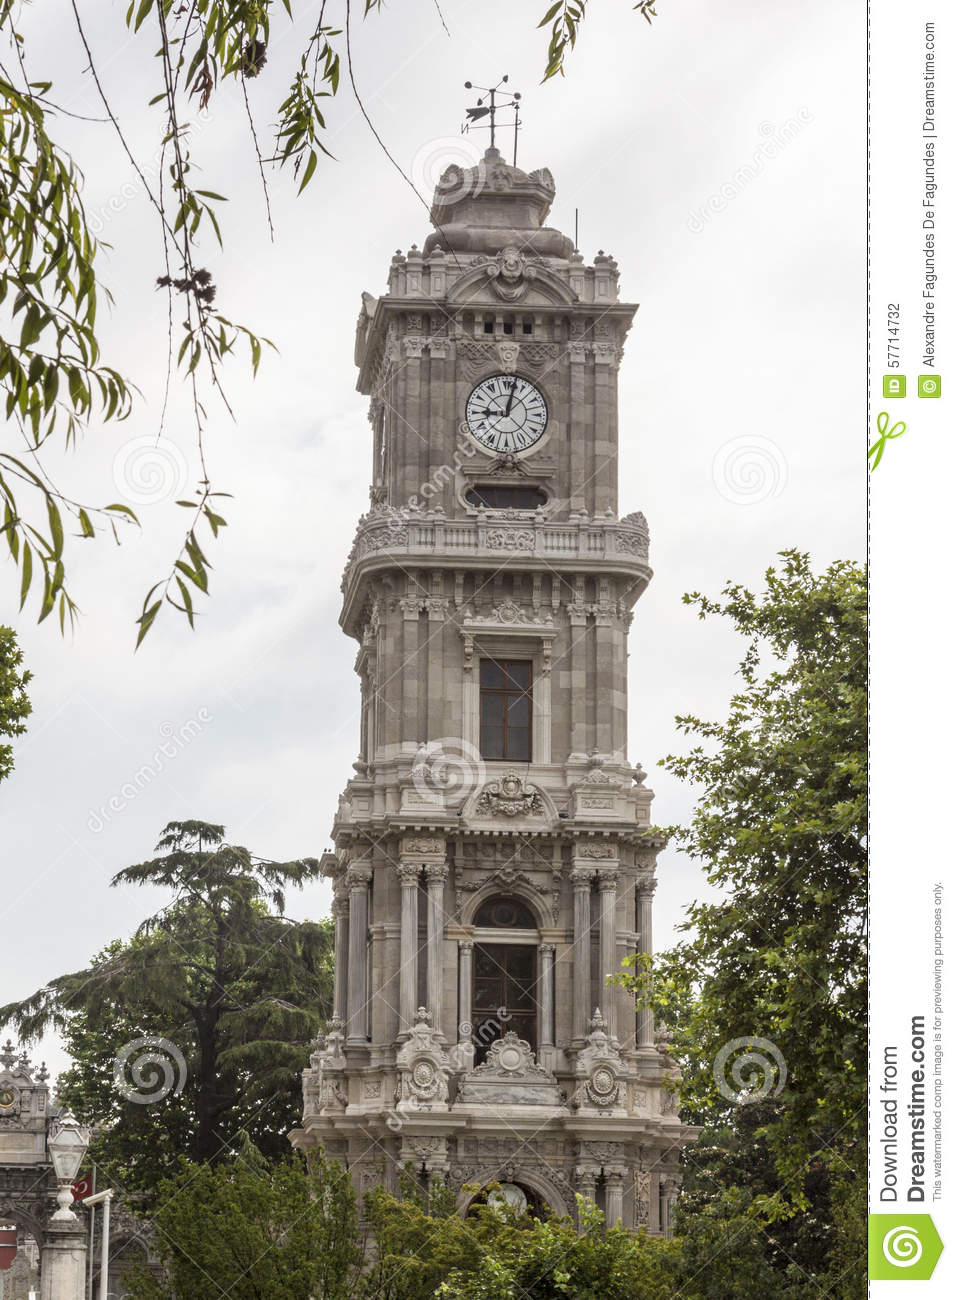 Dolmabahçe Clock Tower Istanbul Stock Photo - Image: 57714732